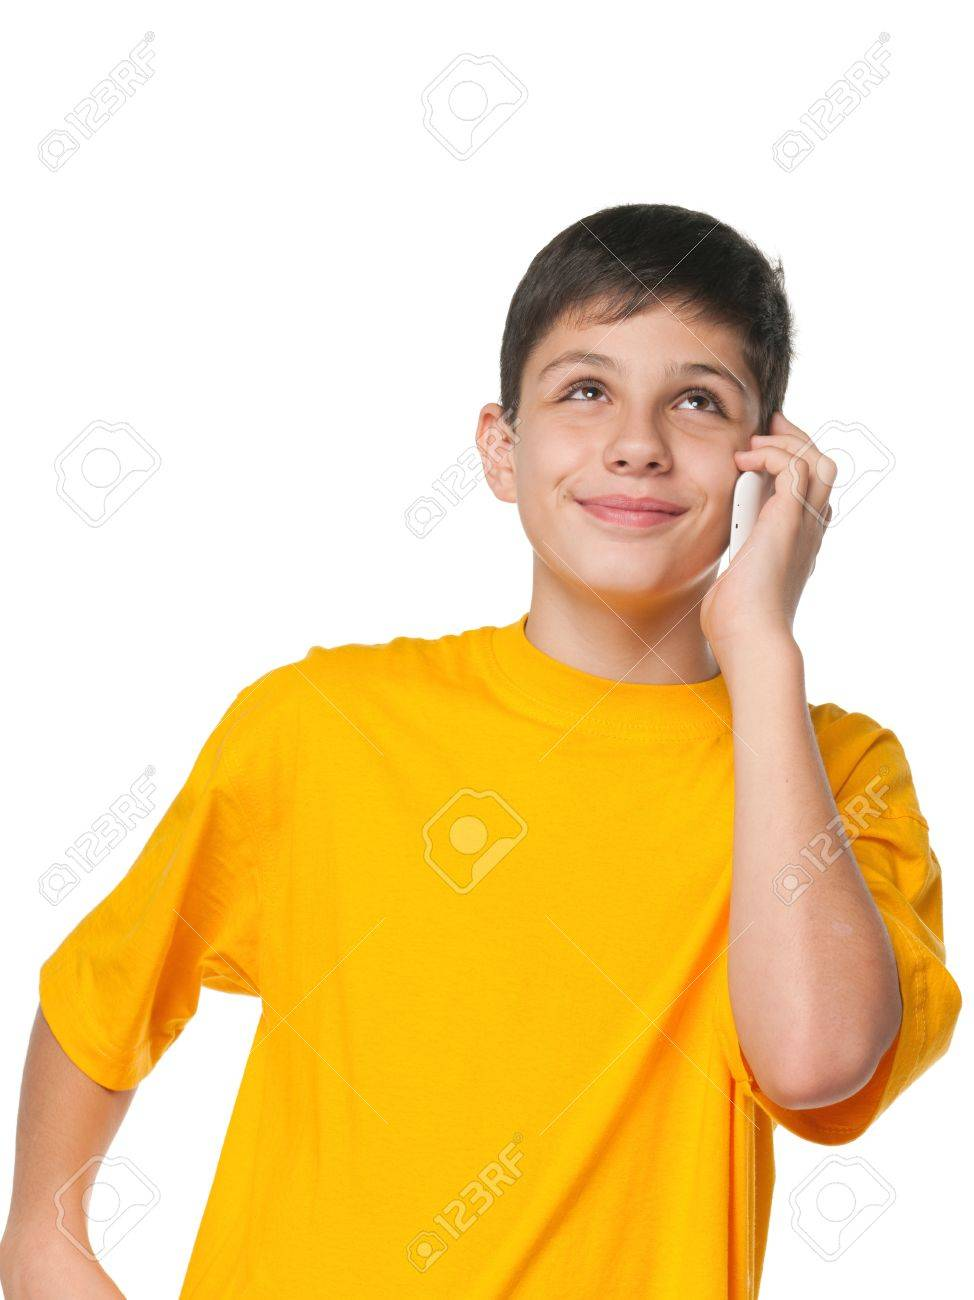 A portrait of a boy in yellow shirt with a cell phone; isolated on the white background Stock Photo - 11266556